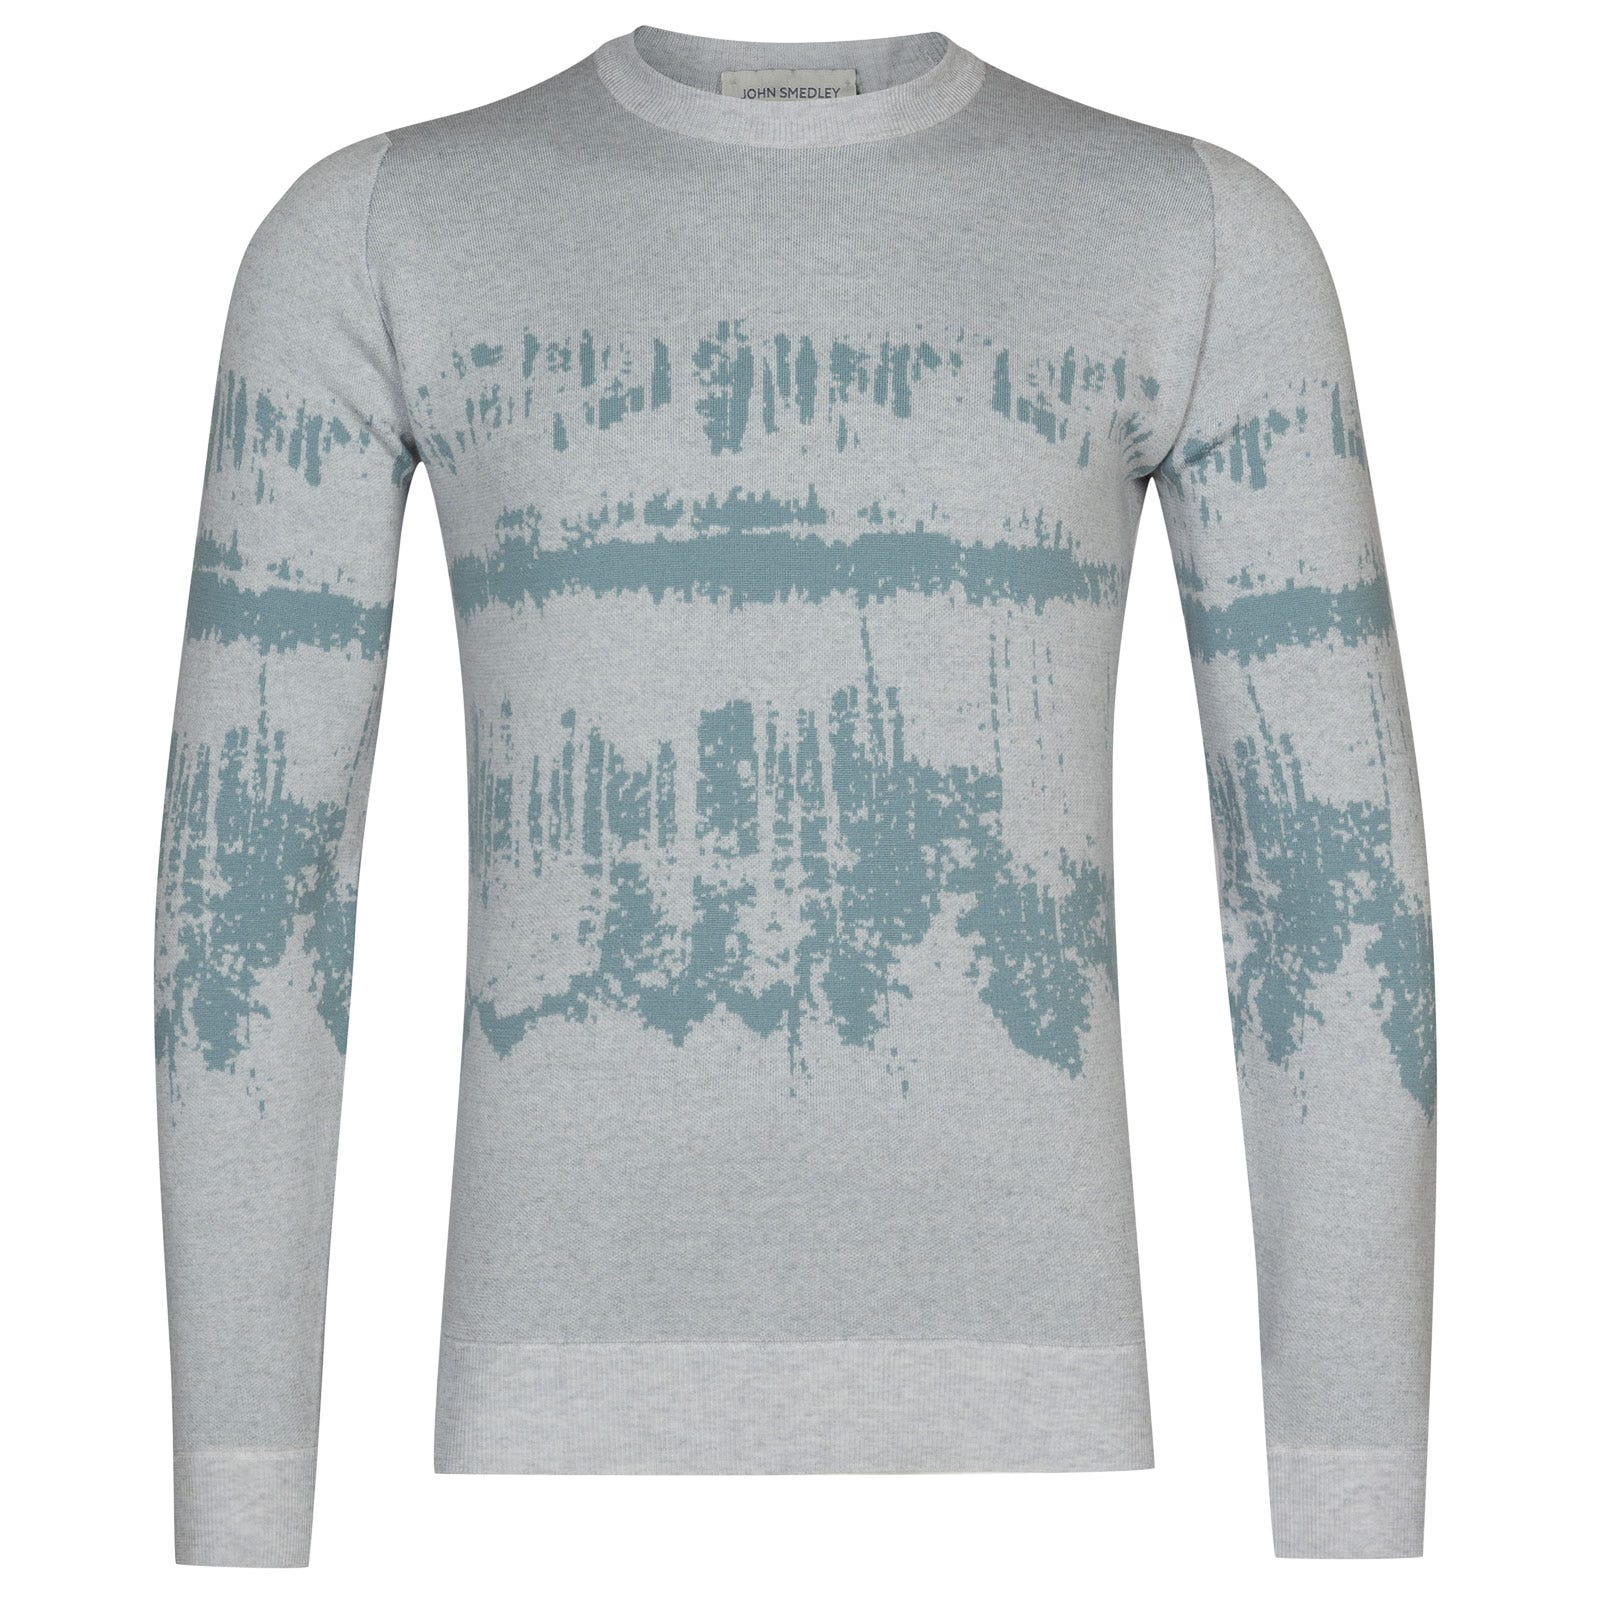 John Smedley girling Merino Wool Pullover in Bardot Grey/Summit